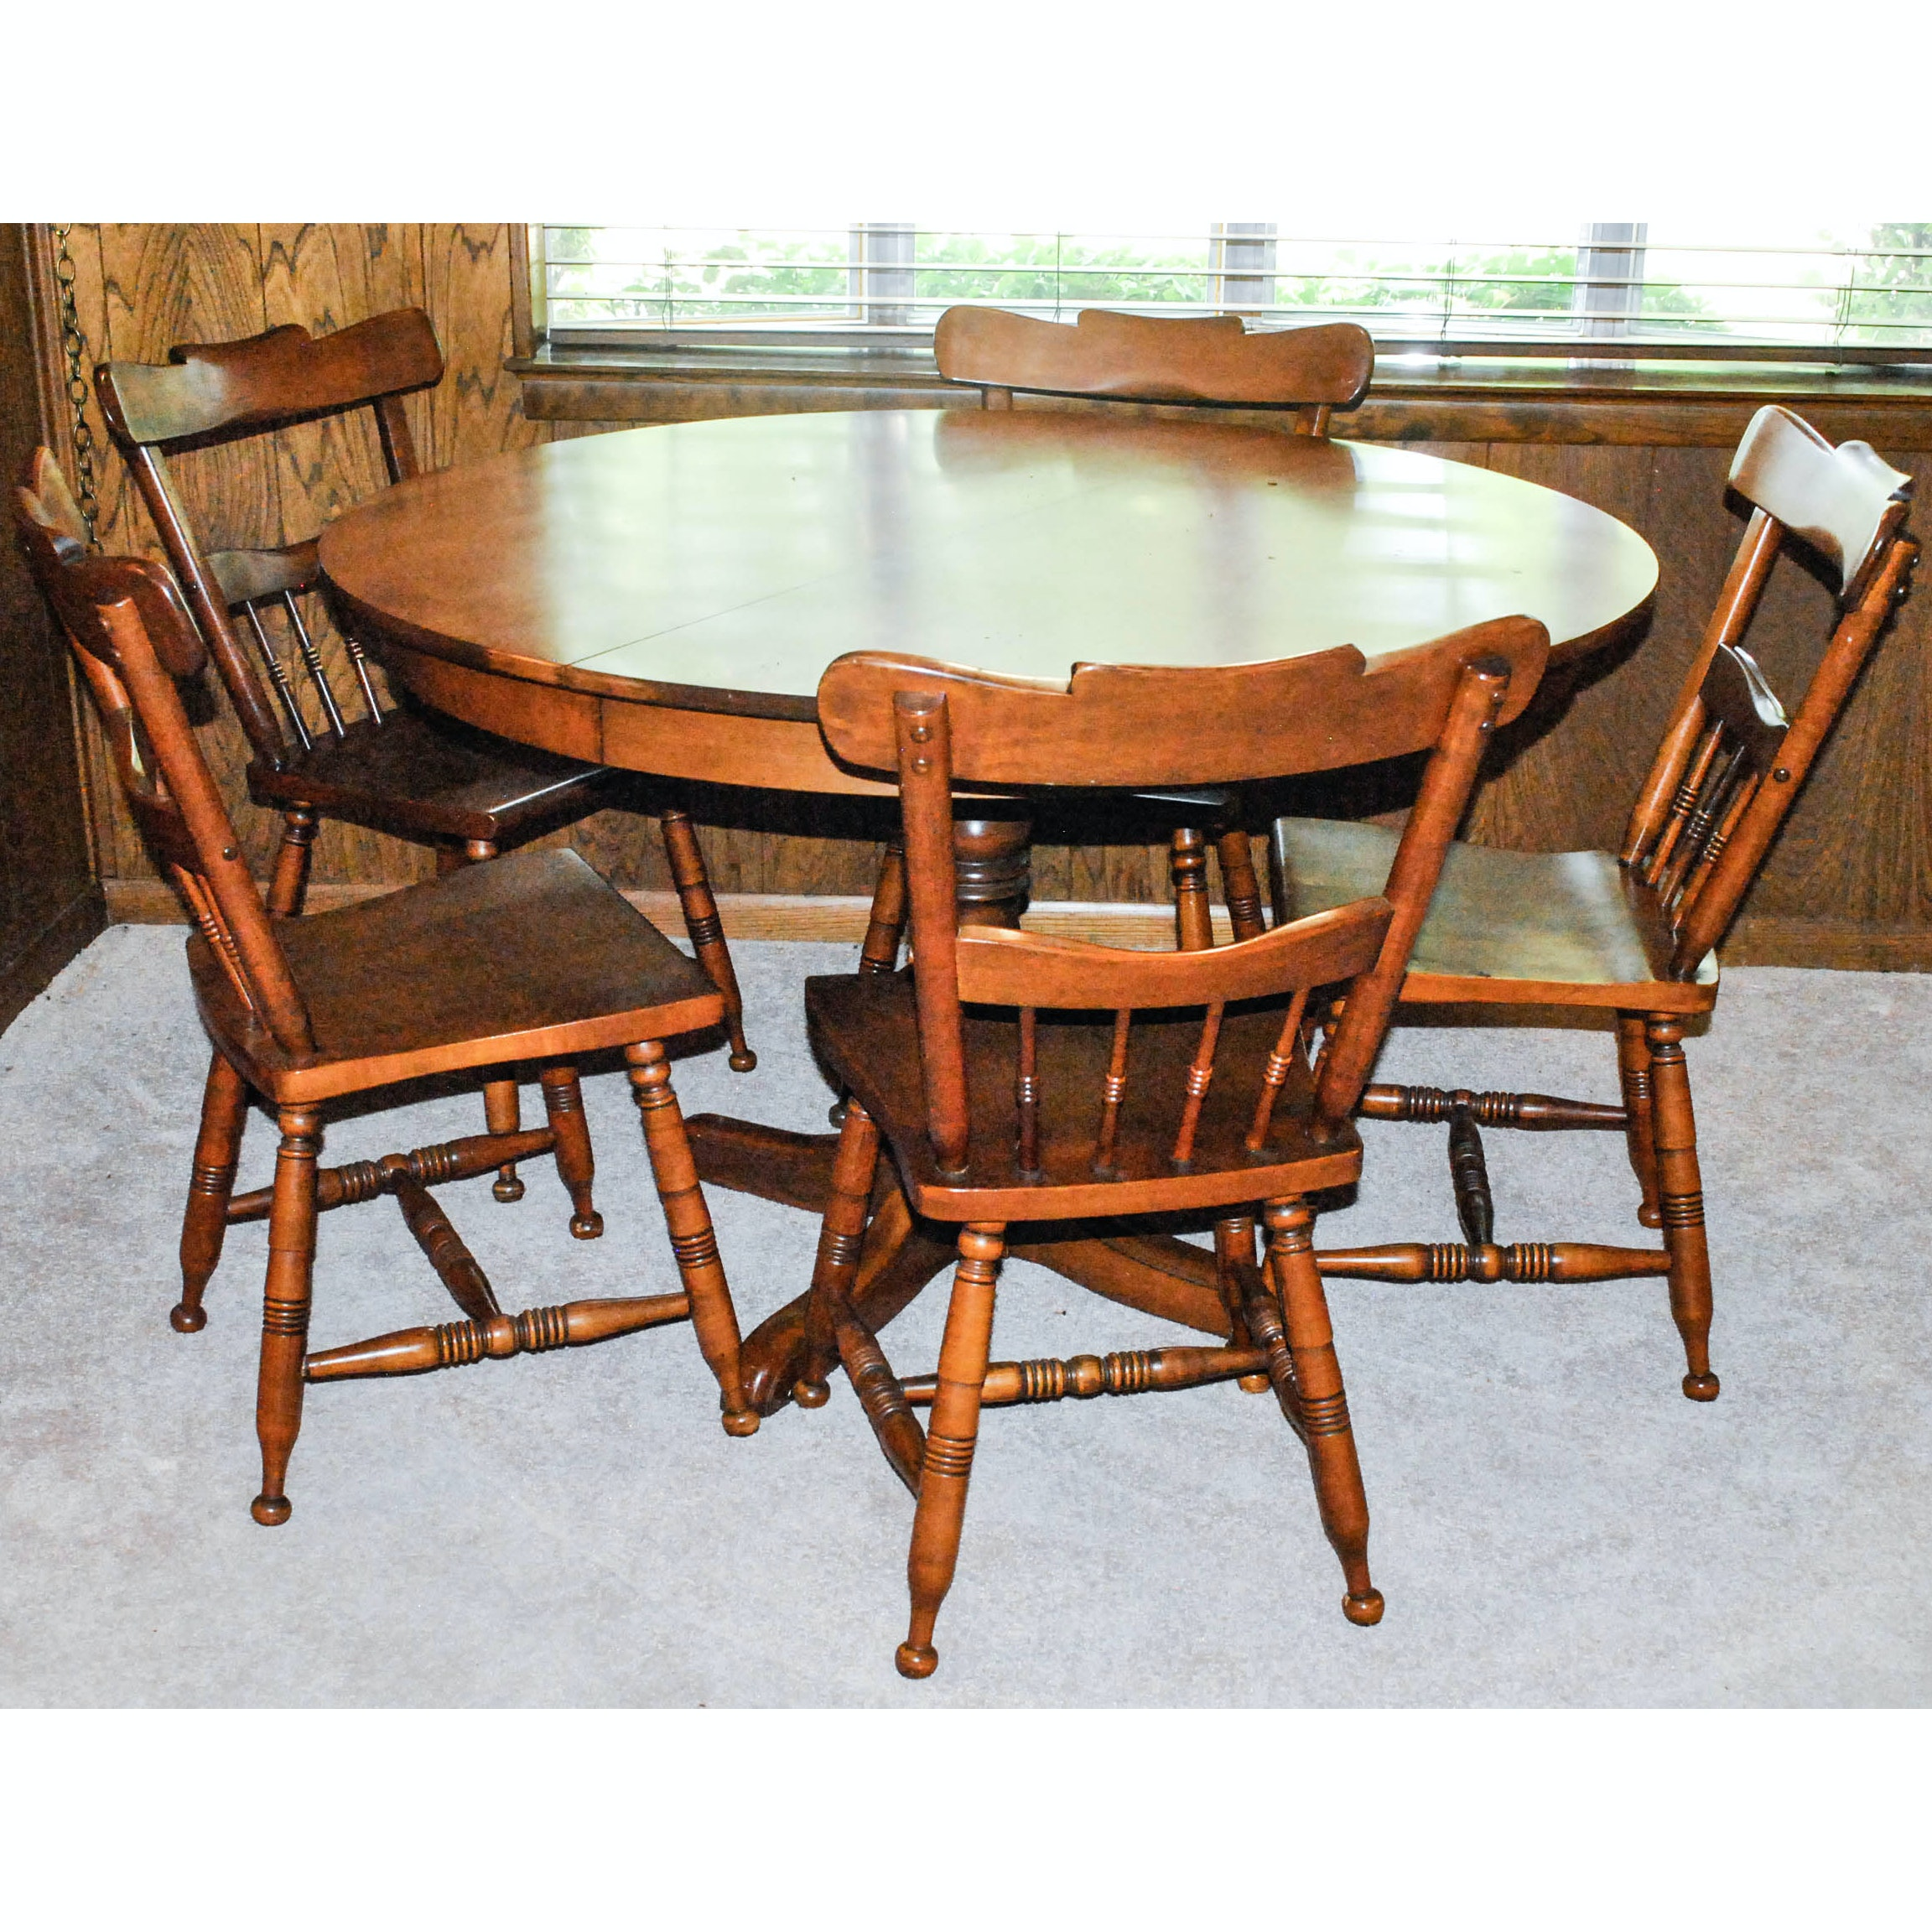 Pedestal Table and Five Windsor Style Chairs